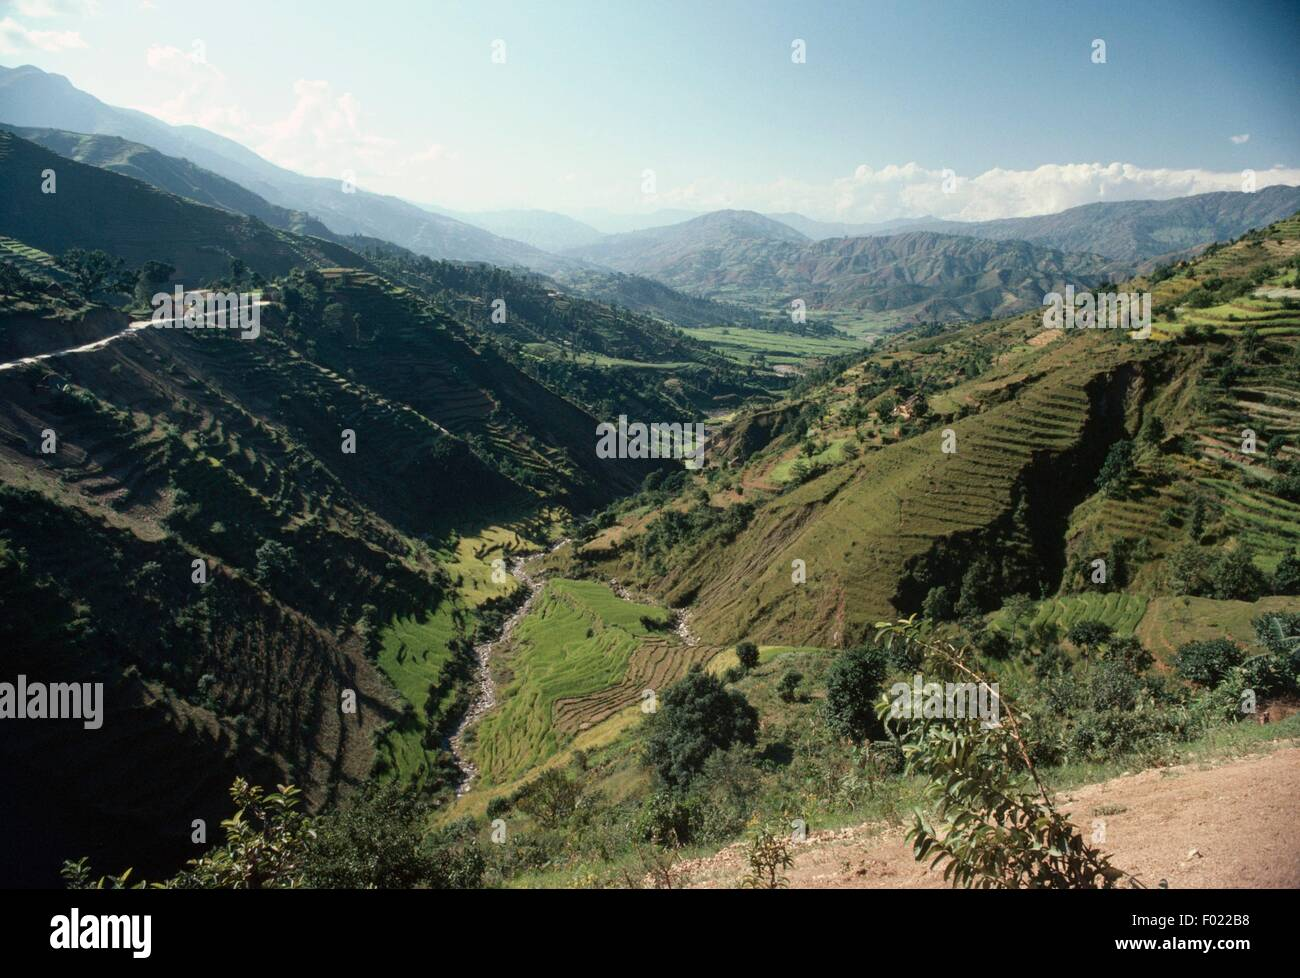 Valley near Lhedi, Lunana region, Bhutan. Stock Photo